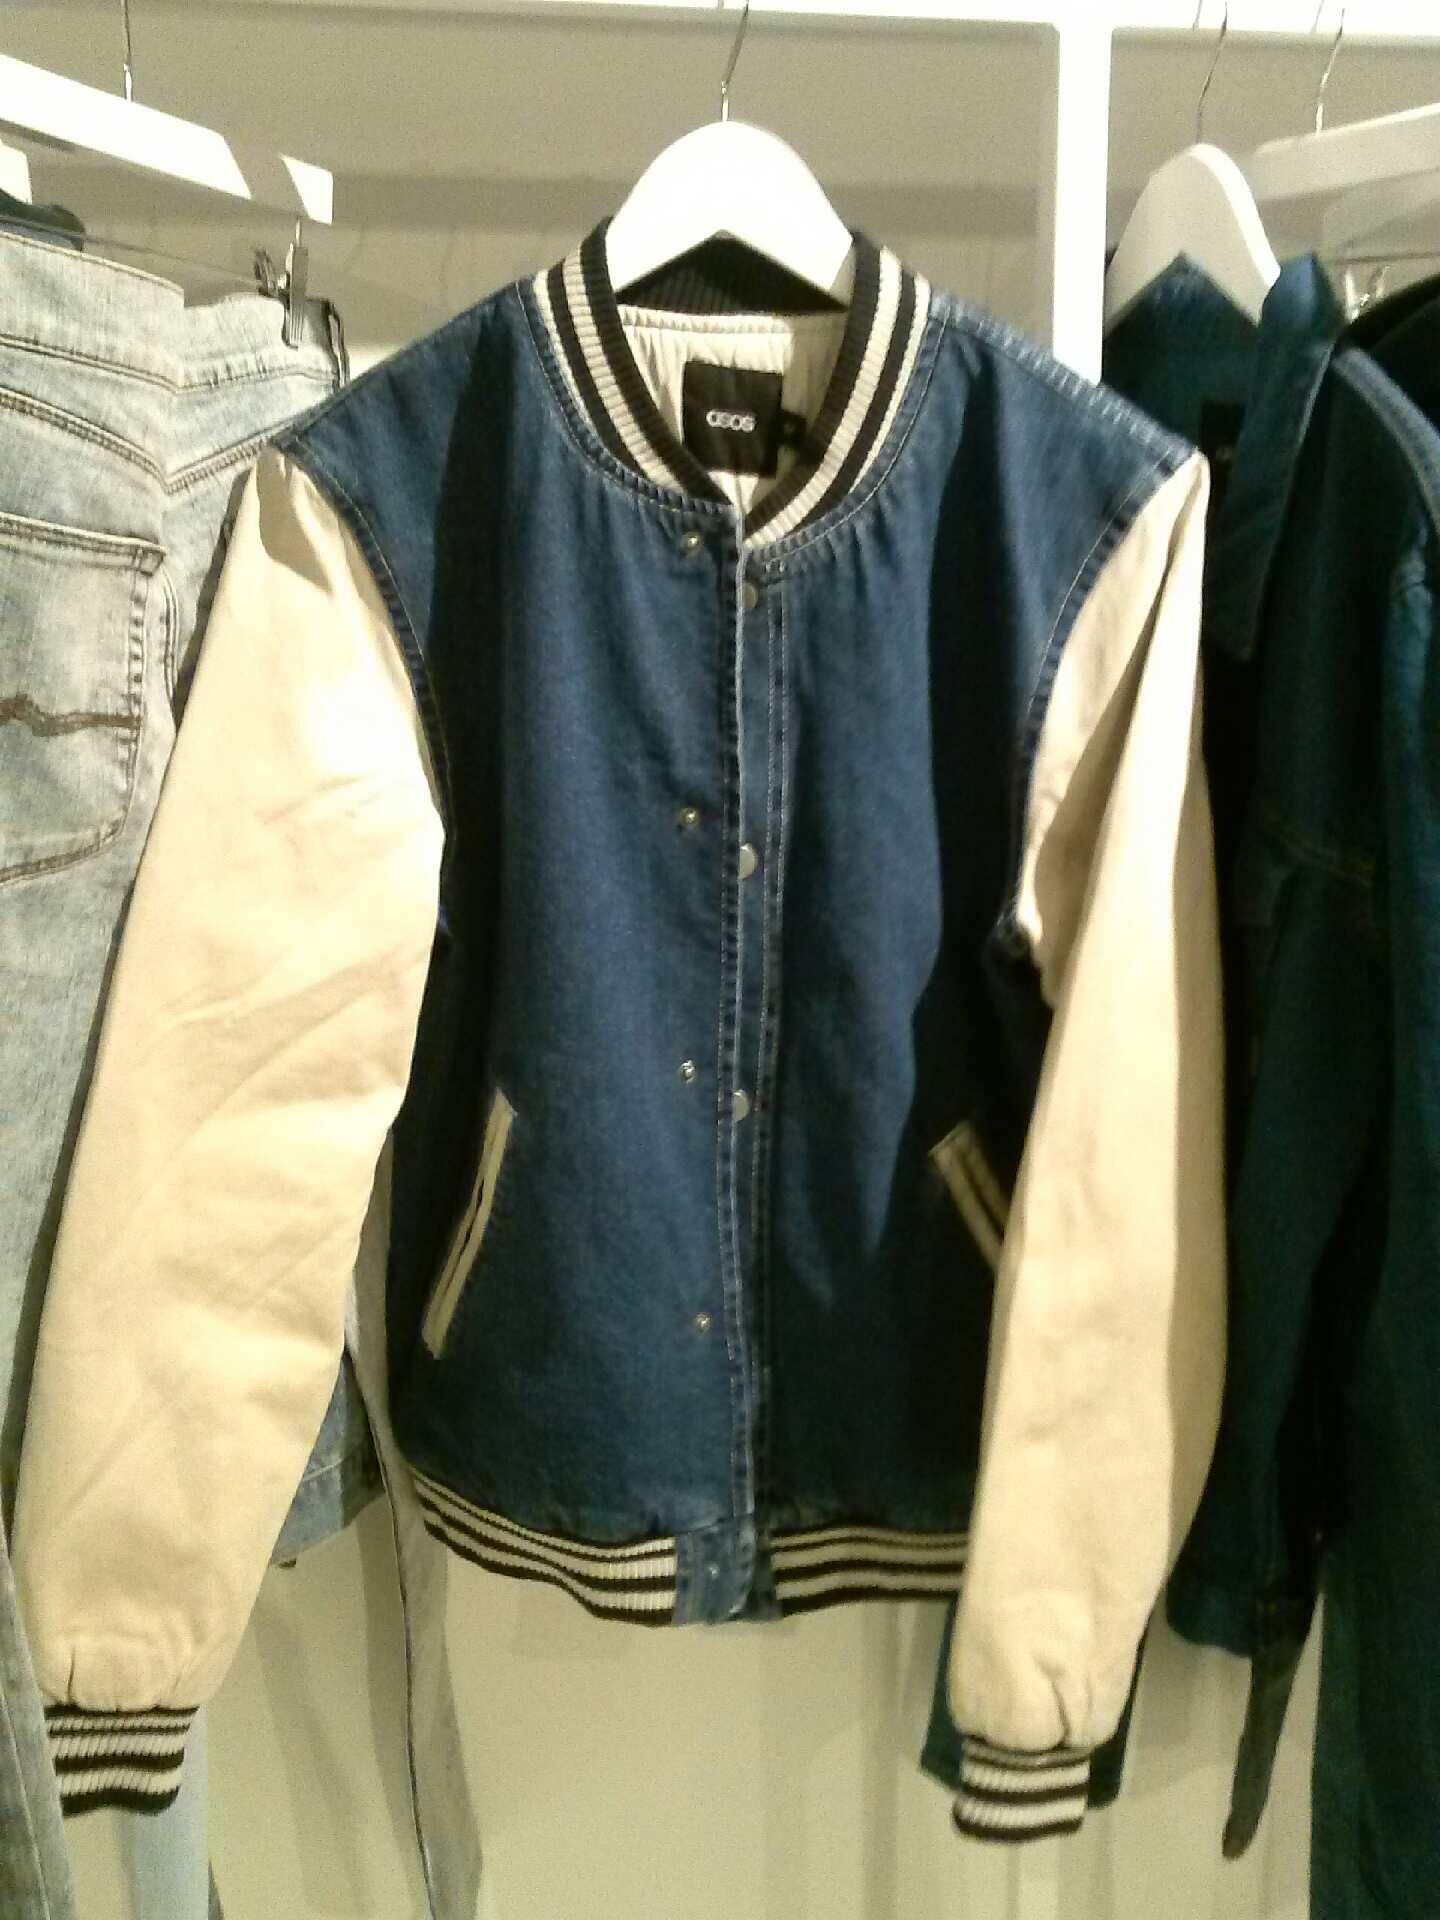 Checking out the new collection @ASOS_US. Some highlights...the denim mix varsity jacket is dope. http://t.co/ezYGINiOq9